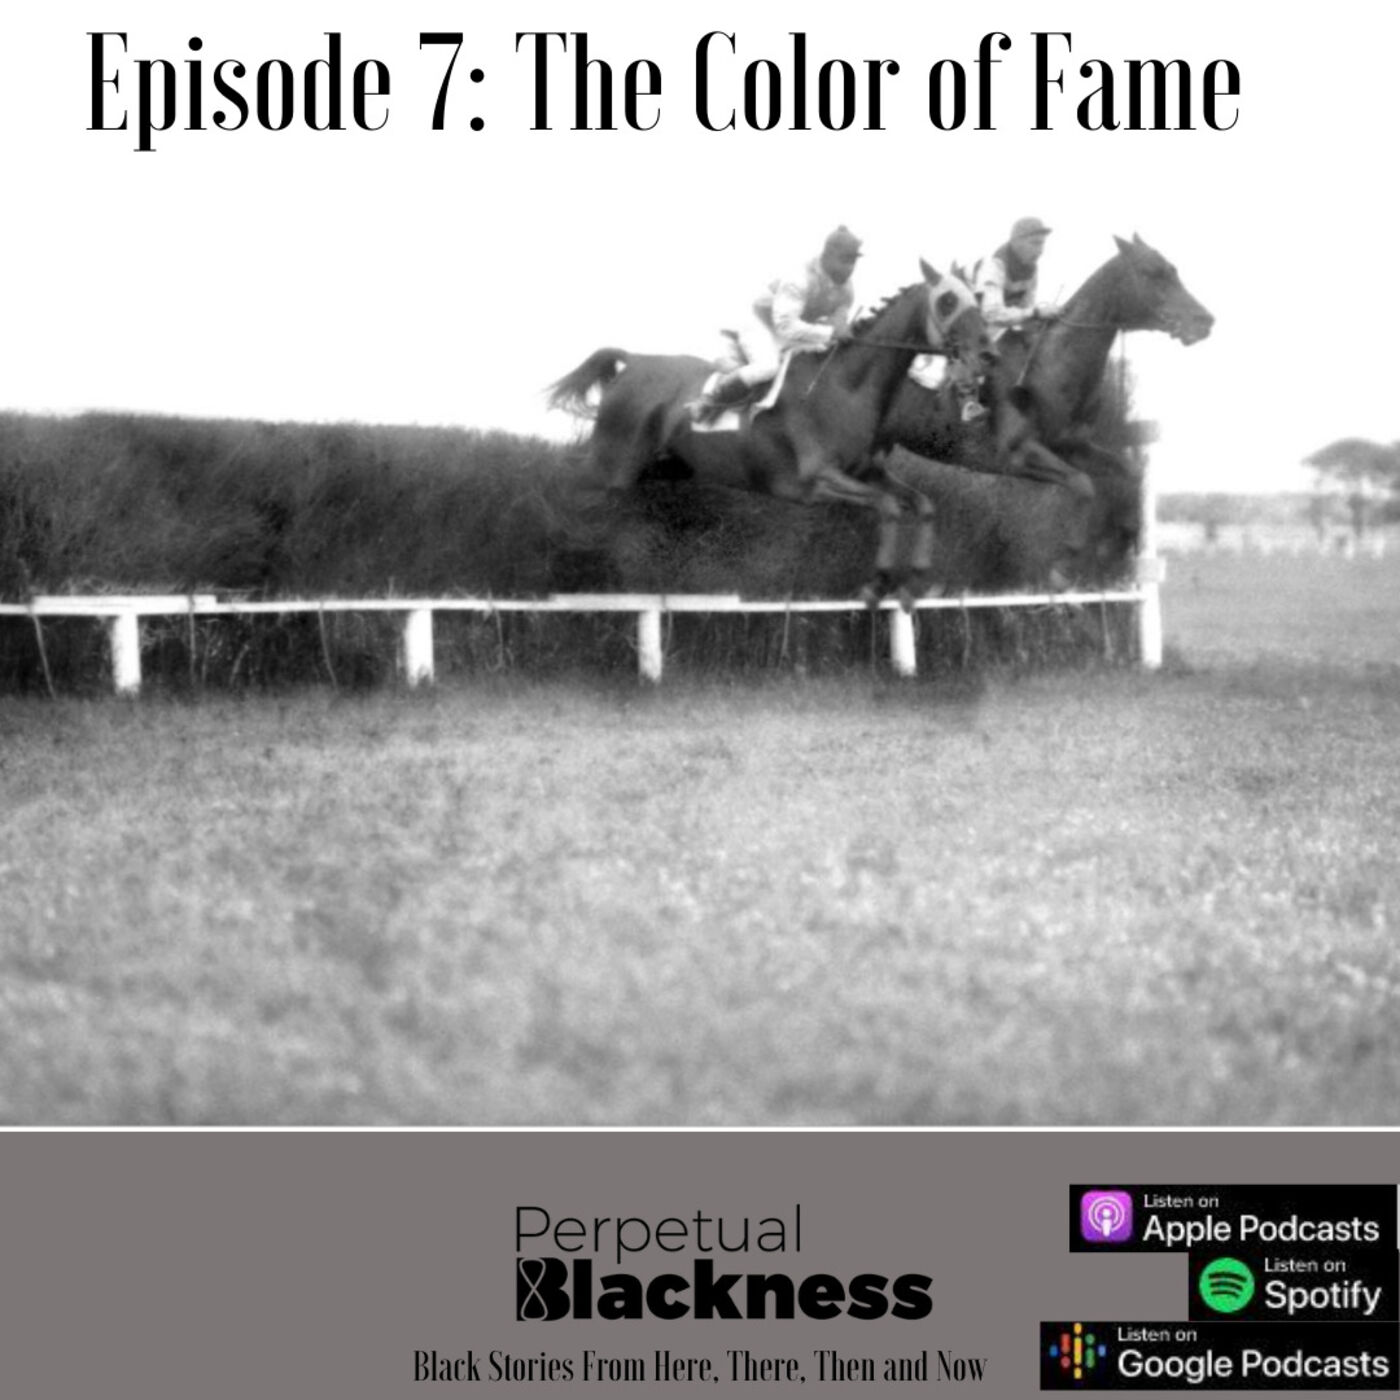 Episode 7: The Color of Fame